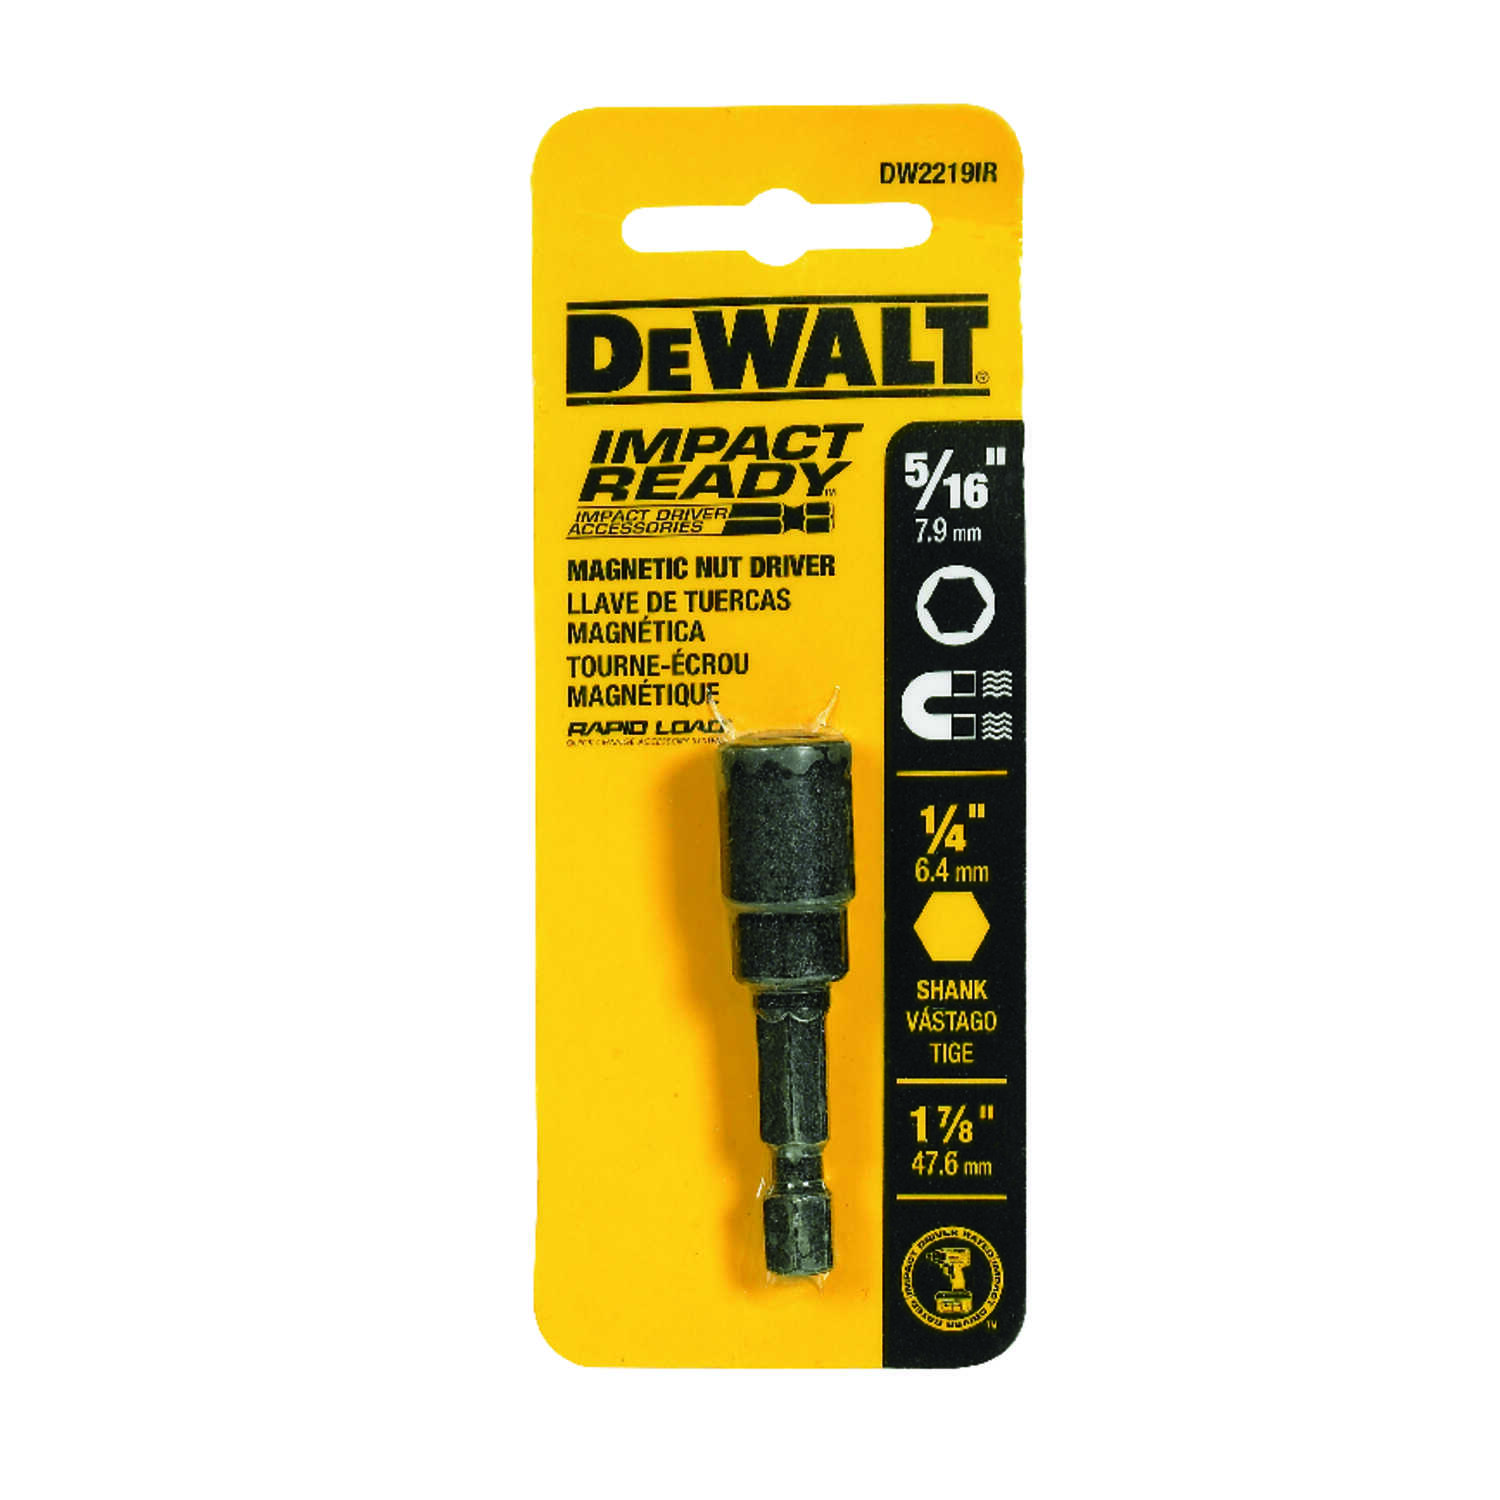 DeWalt  Impact Ready  5/16 in.  x 1-7/8 in. L Black Oxide  Nut Driver  1/4 in. Quick-Change Hex Shan